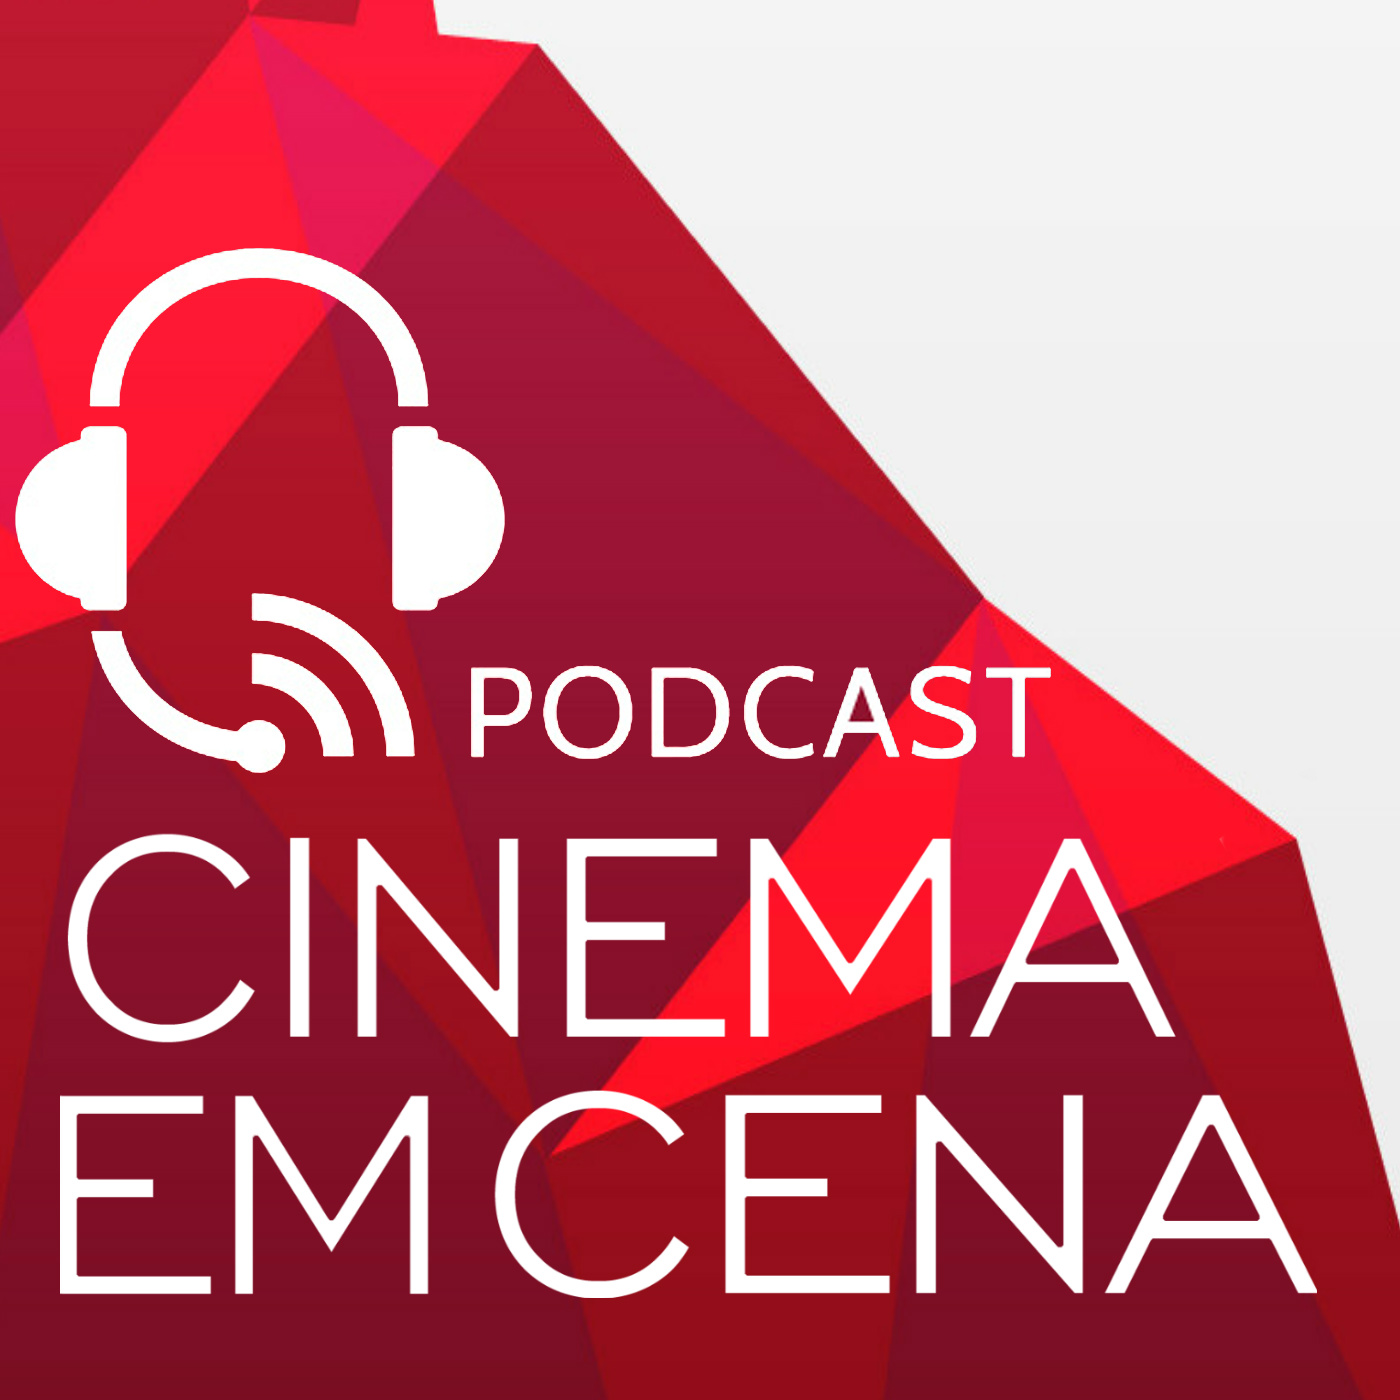 PODCAST #175: Os Beatles no Cinema - Parte 3